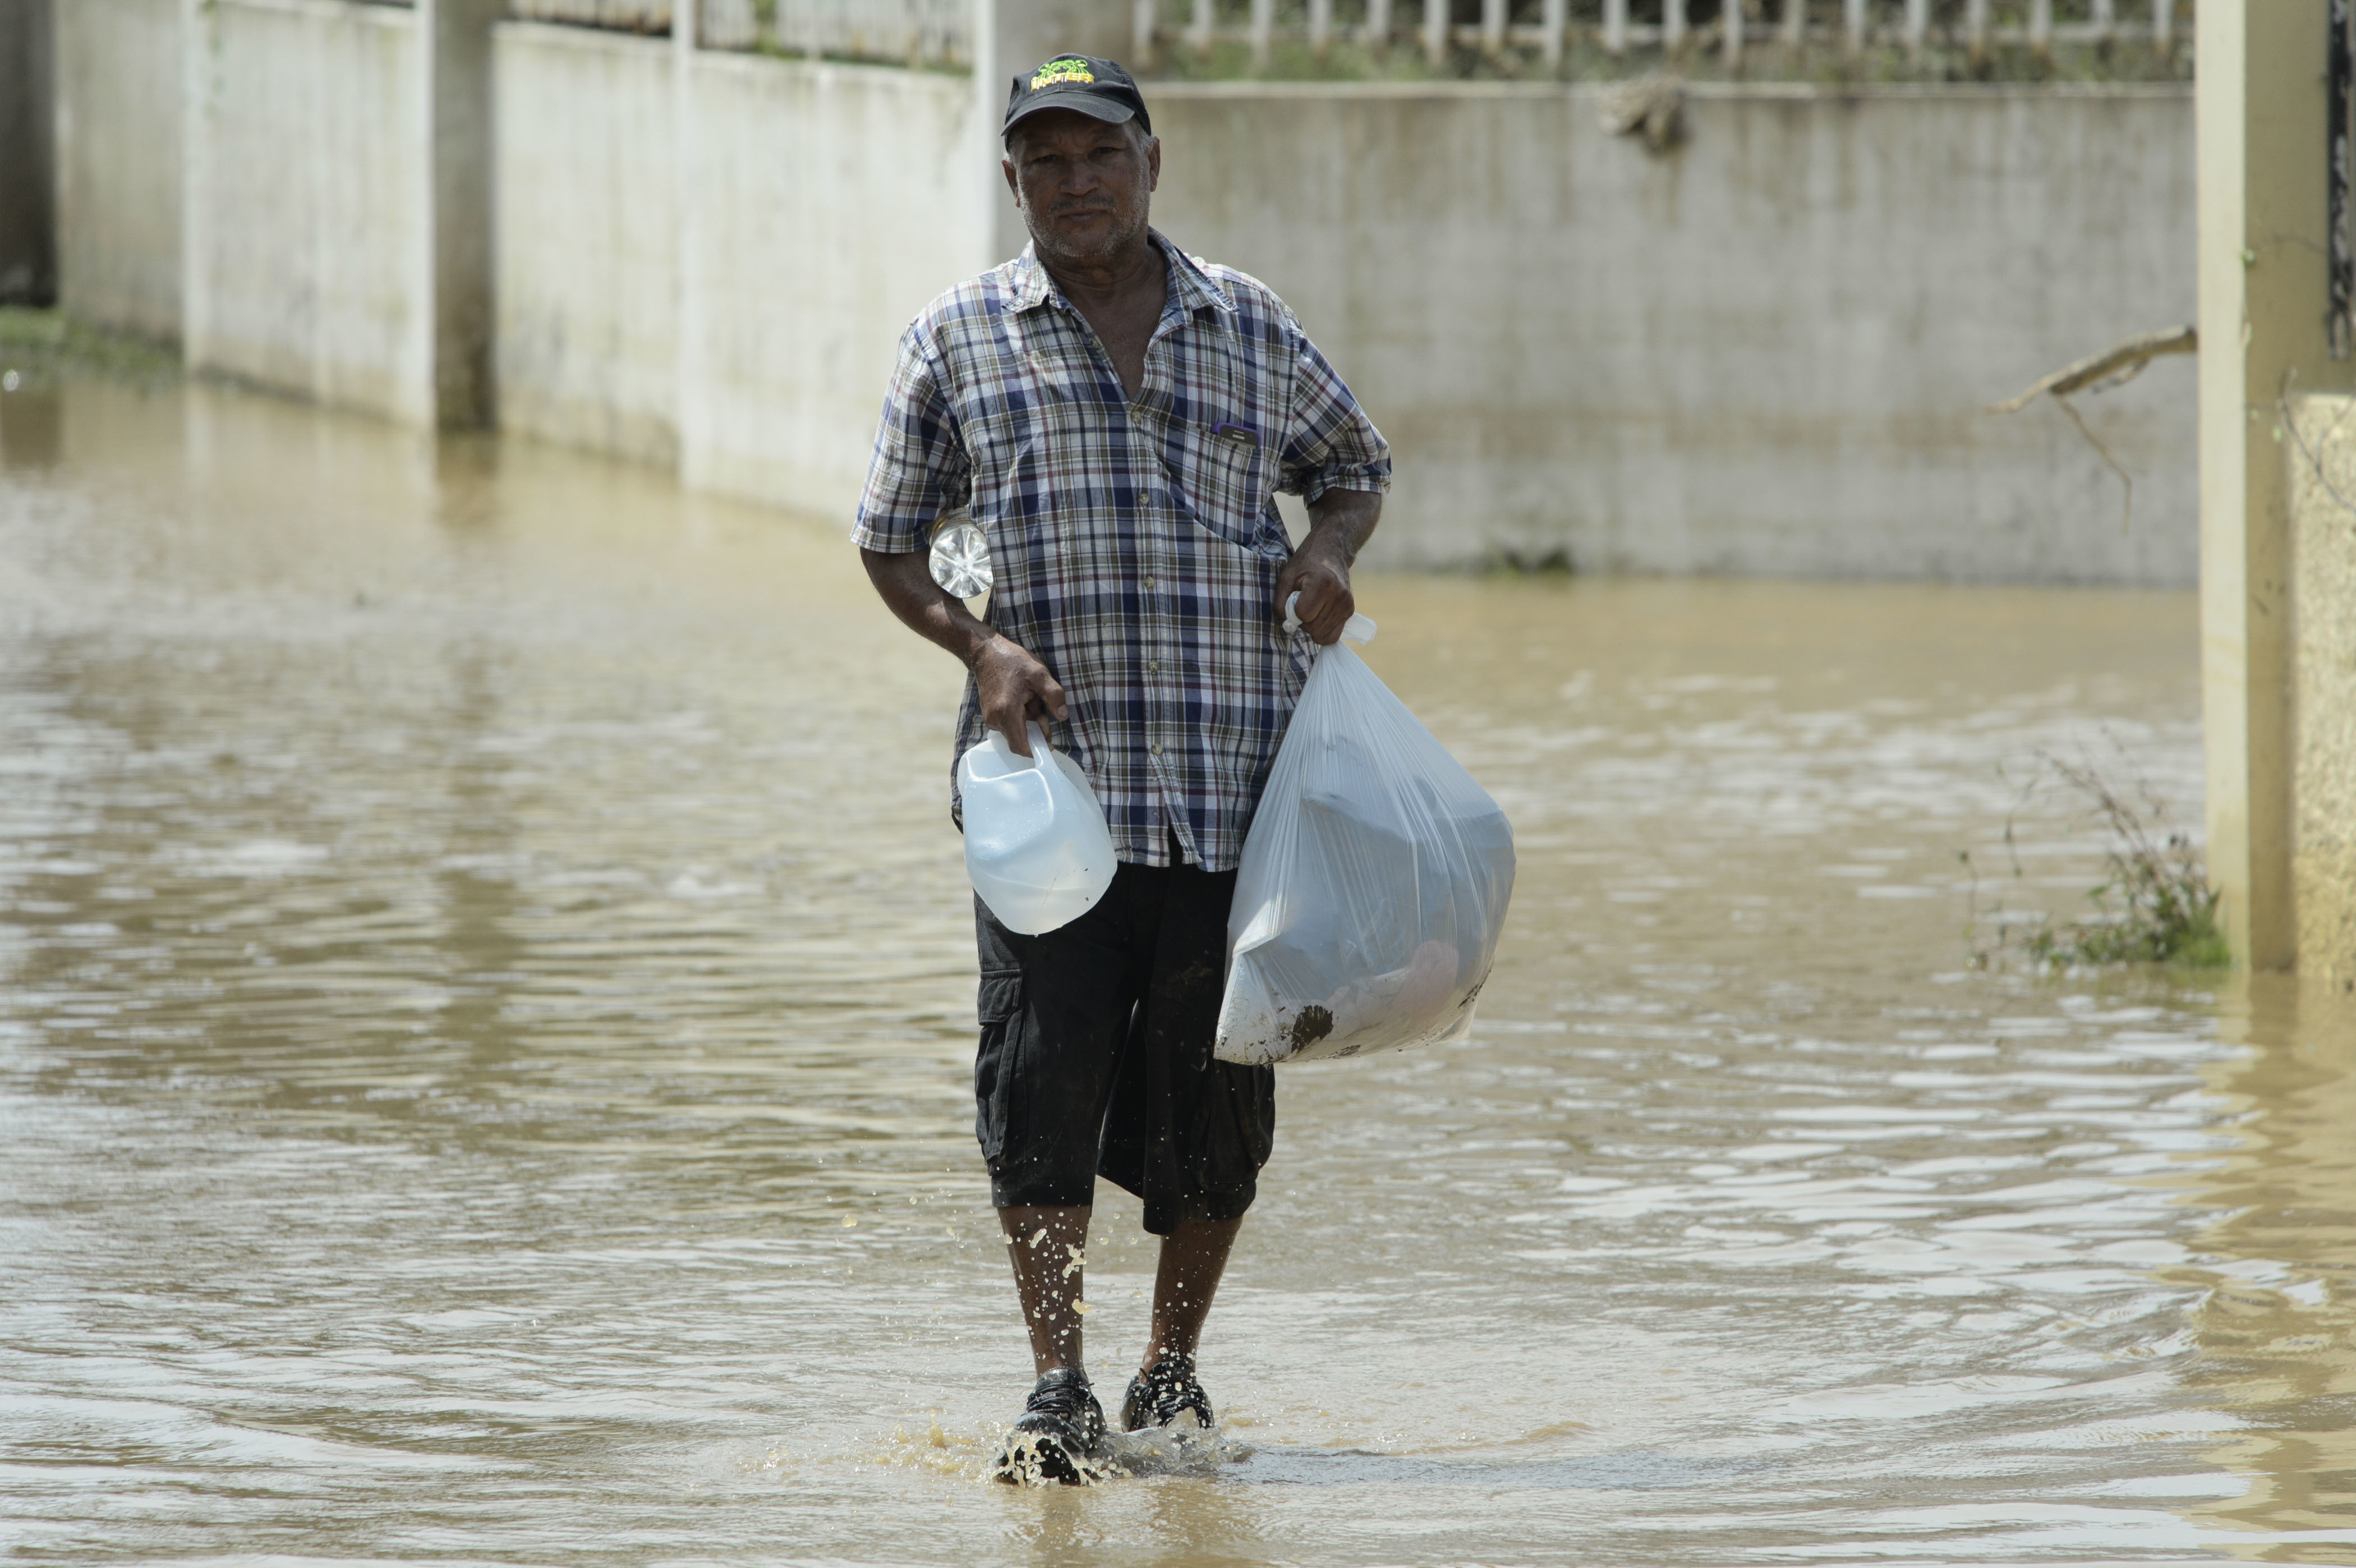 A resident carries supplies in a flooded road after the passing of Hurricane Maria, in Toa Baja, Puerto Rico, Friday, September 22, 2017. Because of the heavy rains brought by Maria, thousands of people were evacuated from Toa Baja after the municipal government opened the gates of the Rio La Plata Dam. (AP Photo/Carlos Giusti)